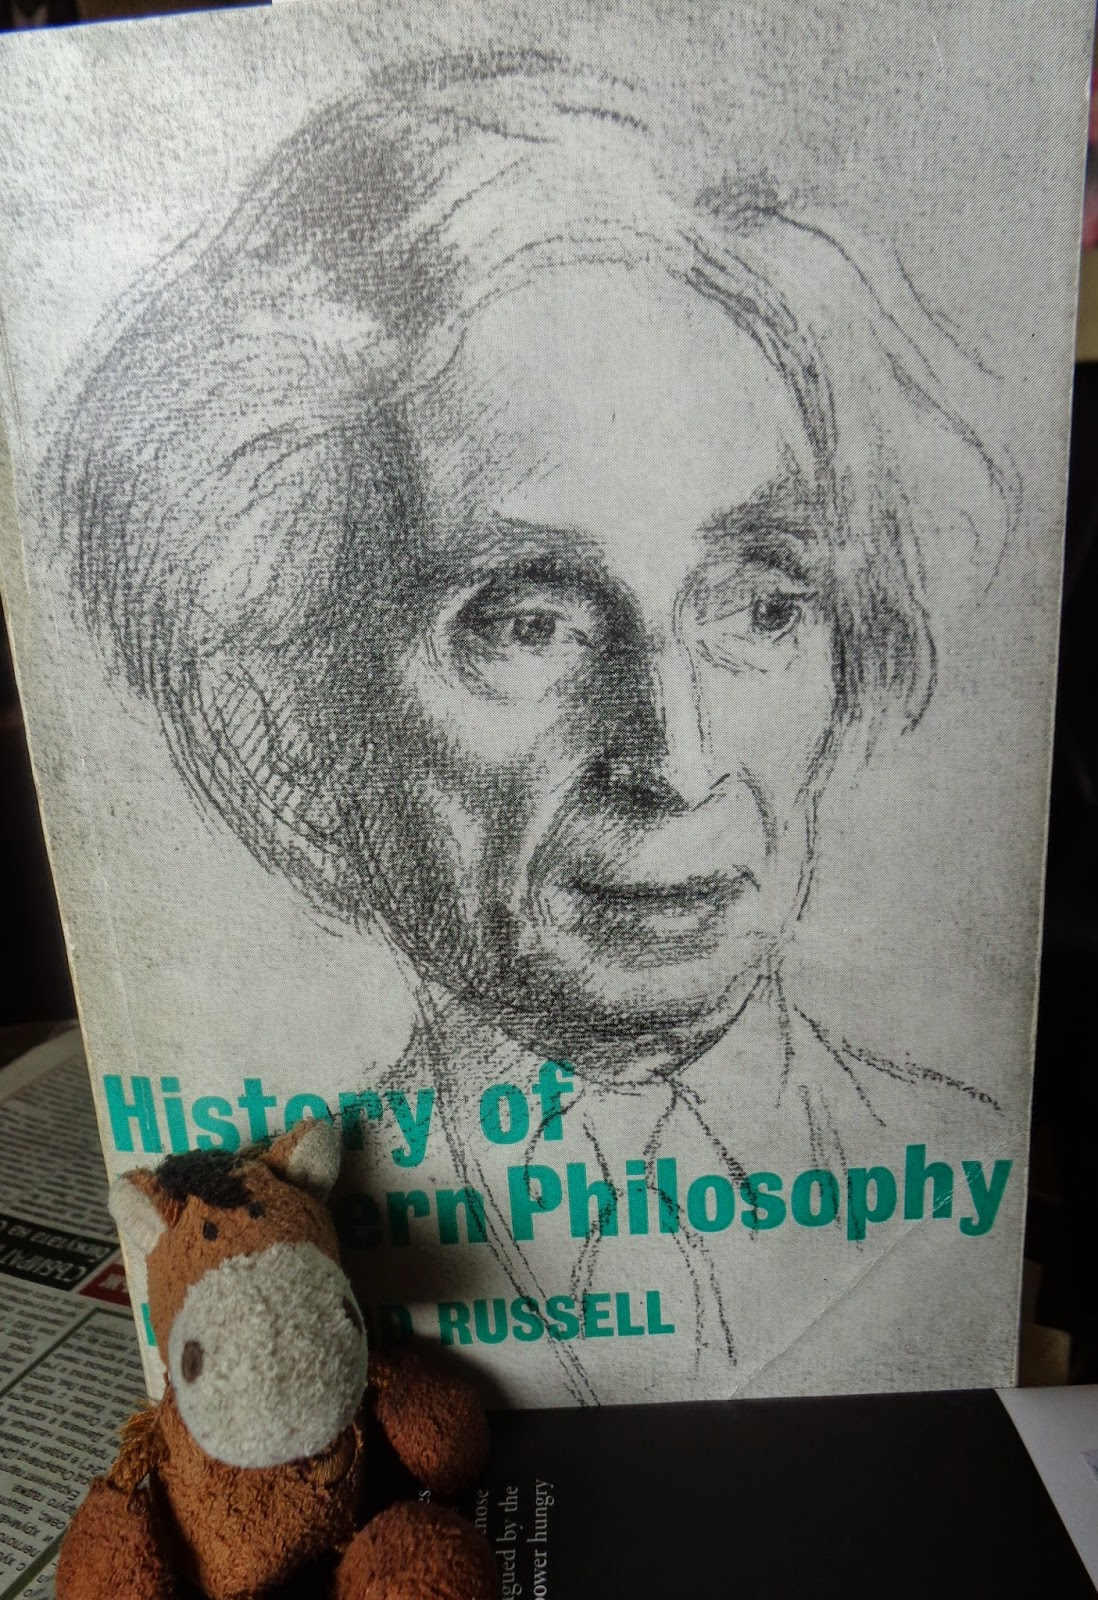 Bertrand Russell's Views On Philosophy - Philosophical Work - Philosophy of Science